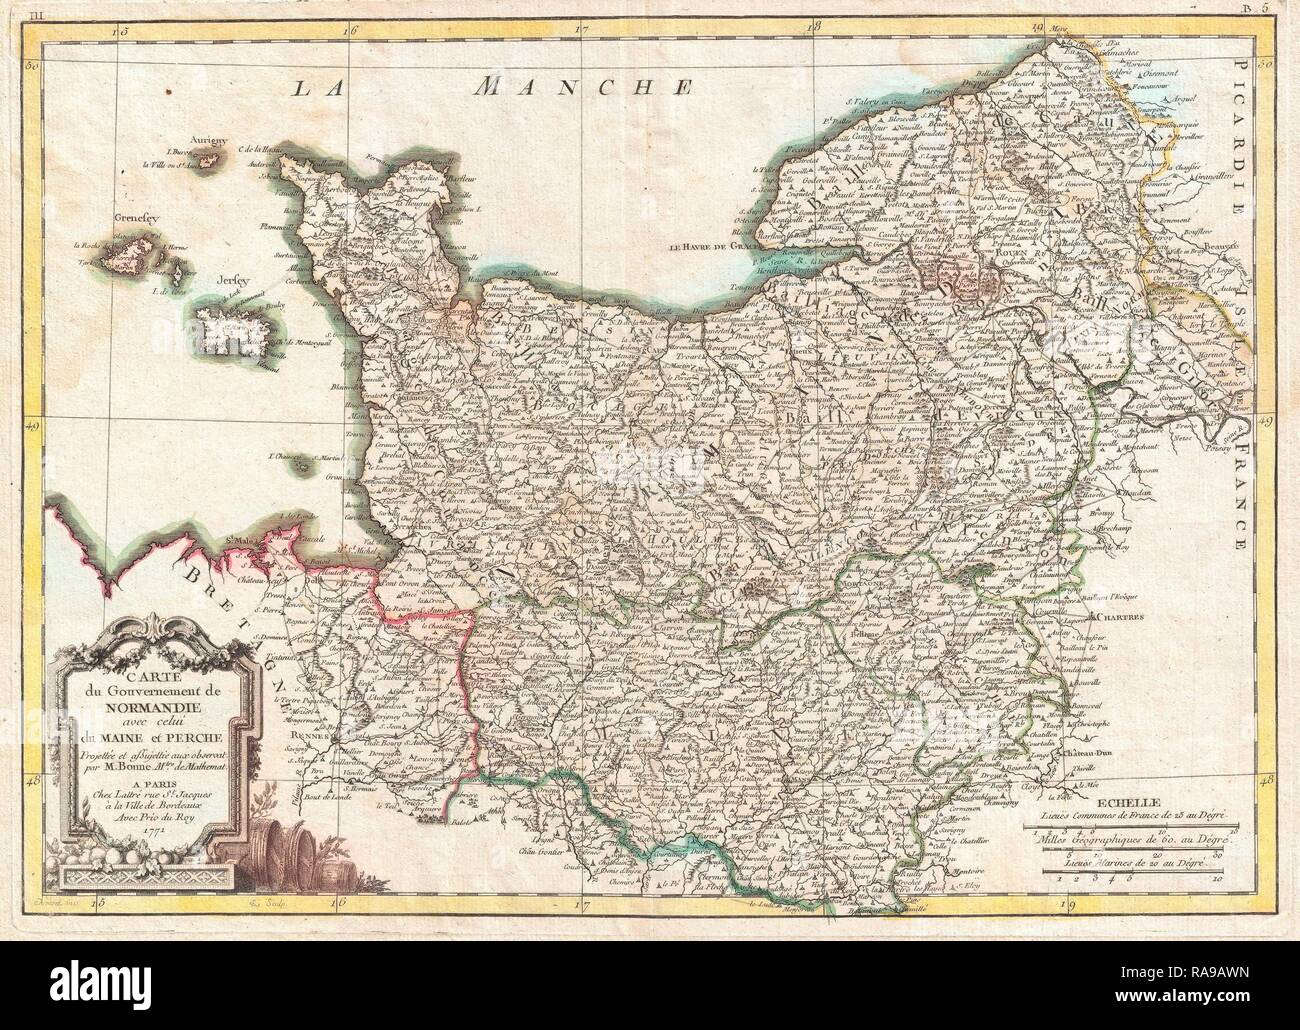 1771, Bonne Map of Normandy, France, Rigobert Bonne 1727 – 1794, one of the most important cartographers of the late reimagined - Stock Image